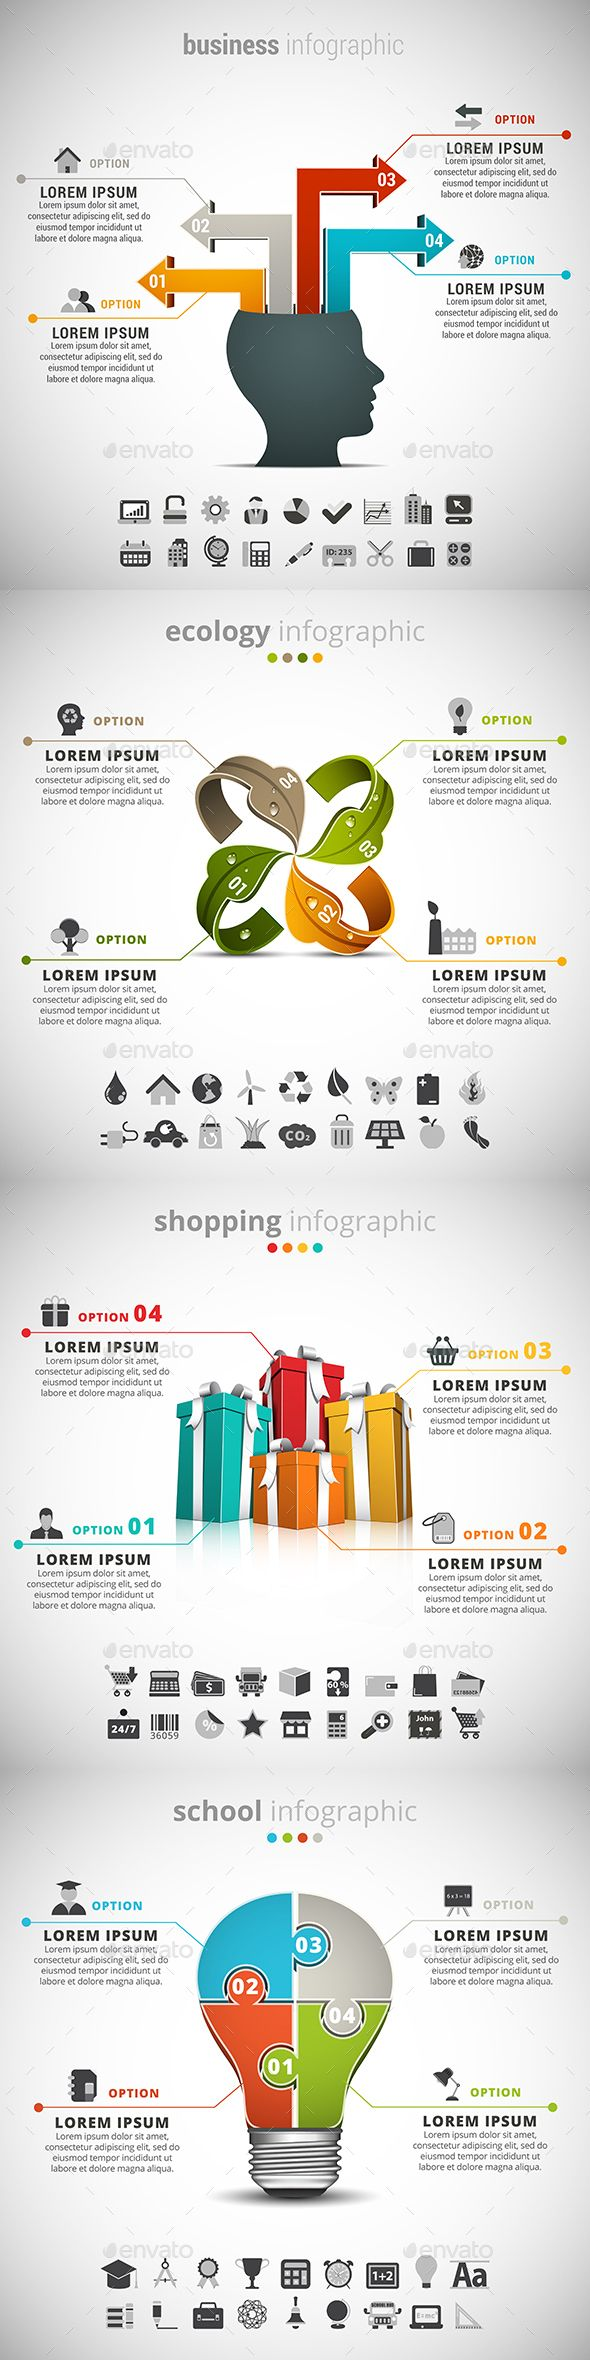 4 in 1 Business Infographics Template Bundle. Download here: http://graphicriver.net/item/4-in-1-business-infographics-bundle/14471910?ref=ksioks